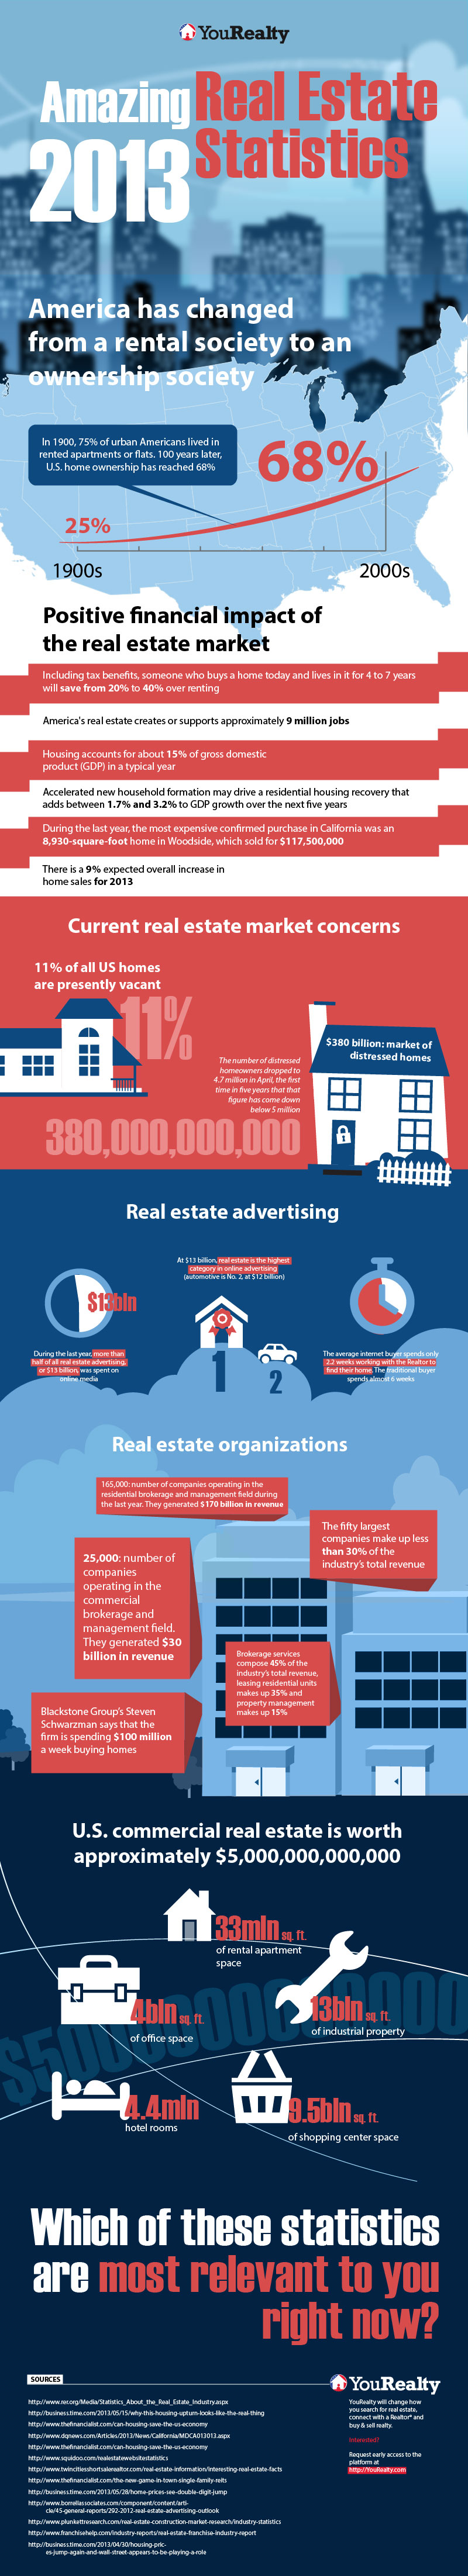 2013 Real Estate Statistics